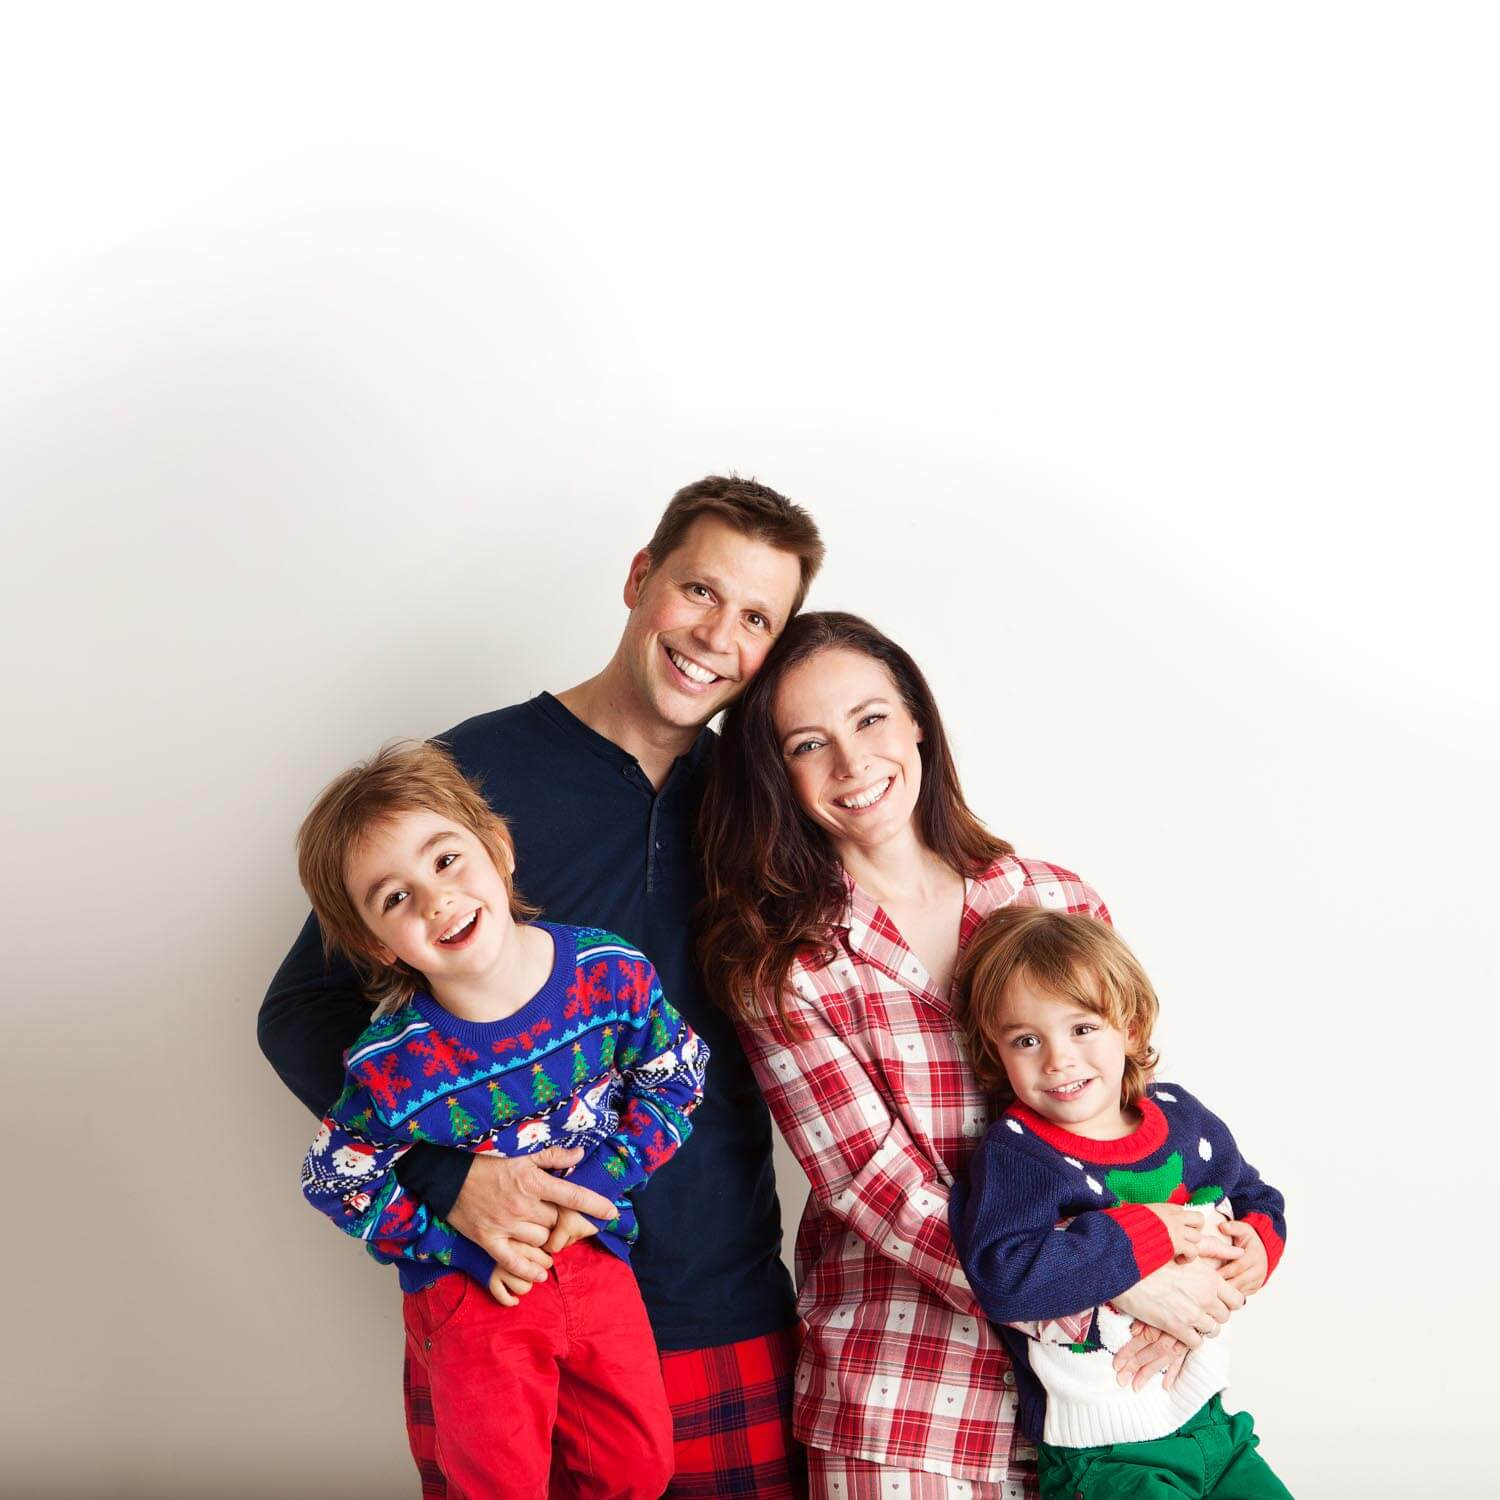 Family Christmas Portraits in Wimbledon London